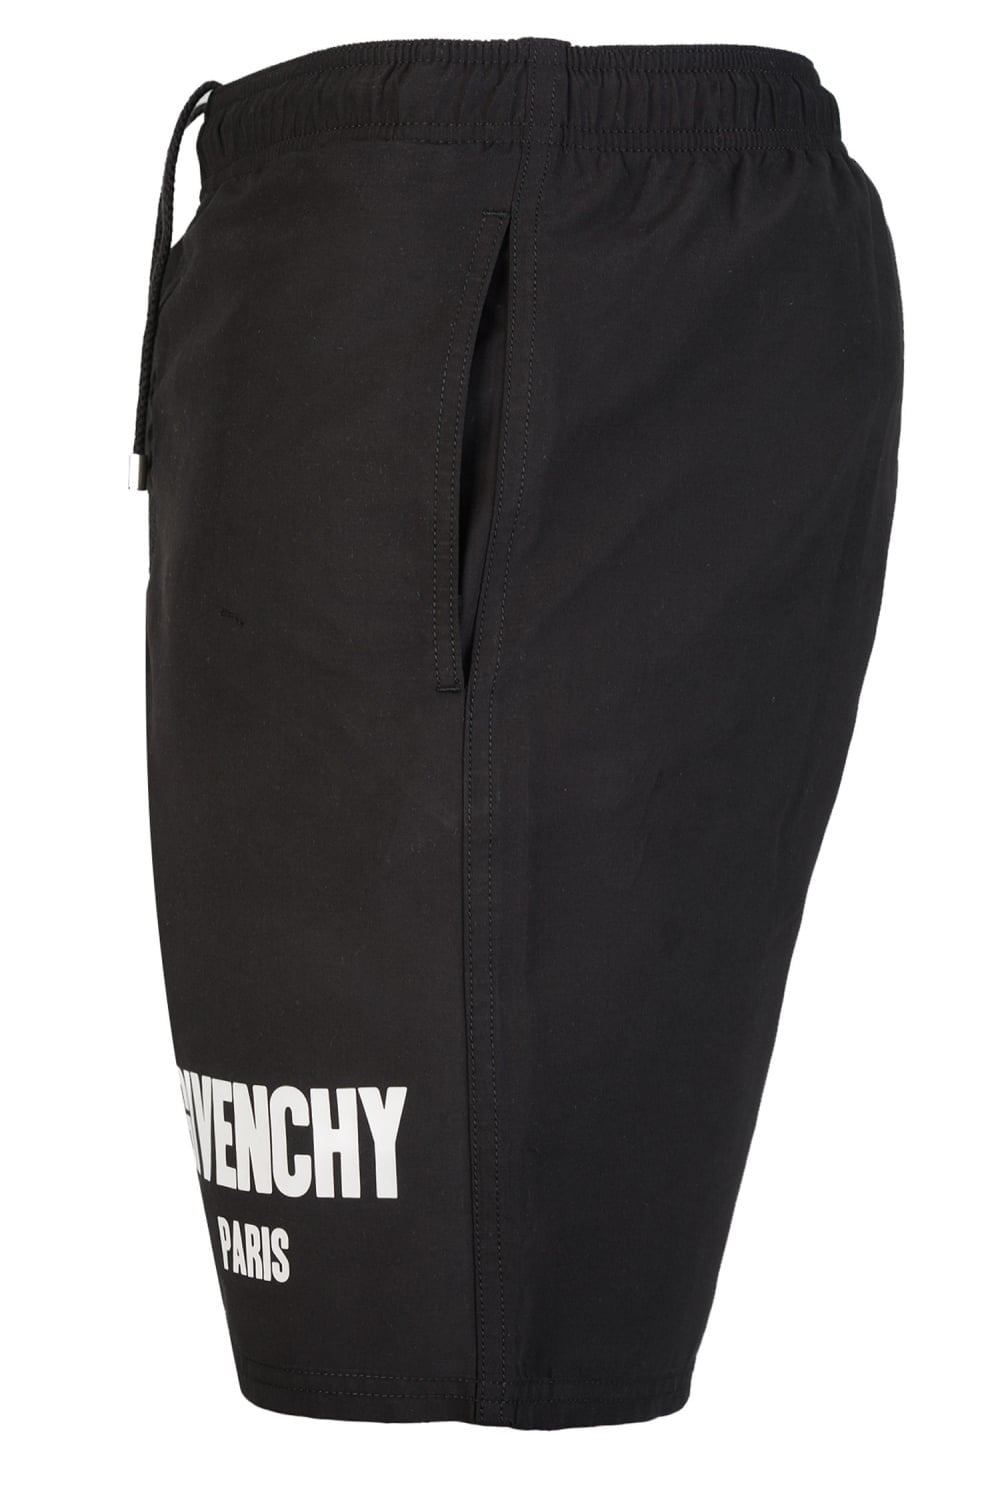 c7ffcd4d9d8f0a GIVENCHY Givenchy Paris Logo Swim shorts - Clothing from Circle ...